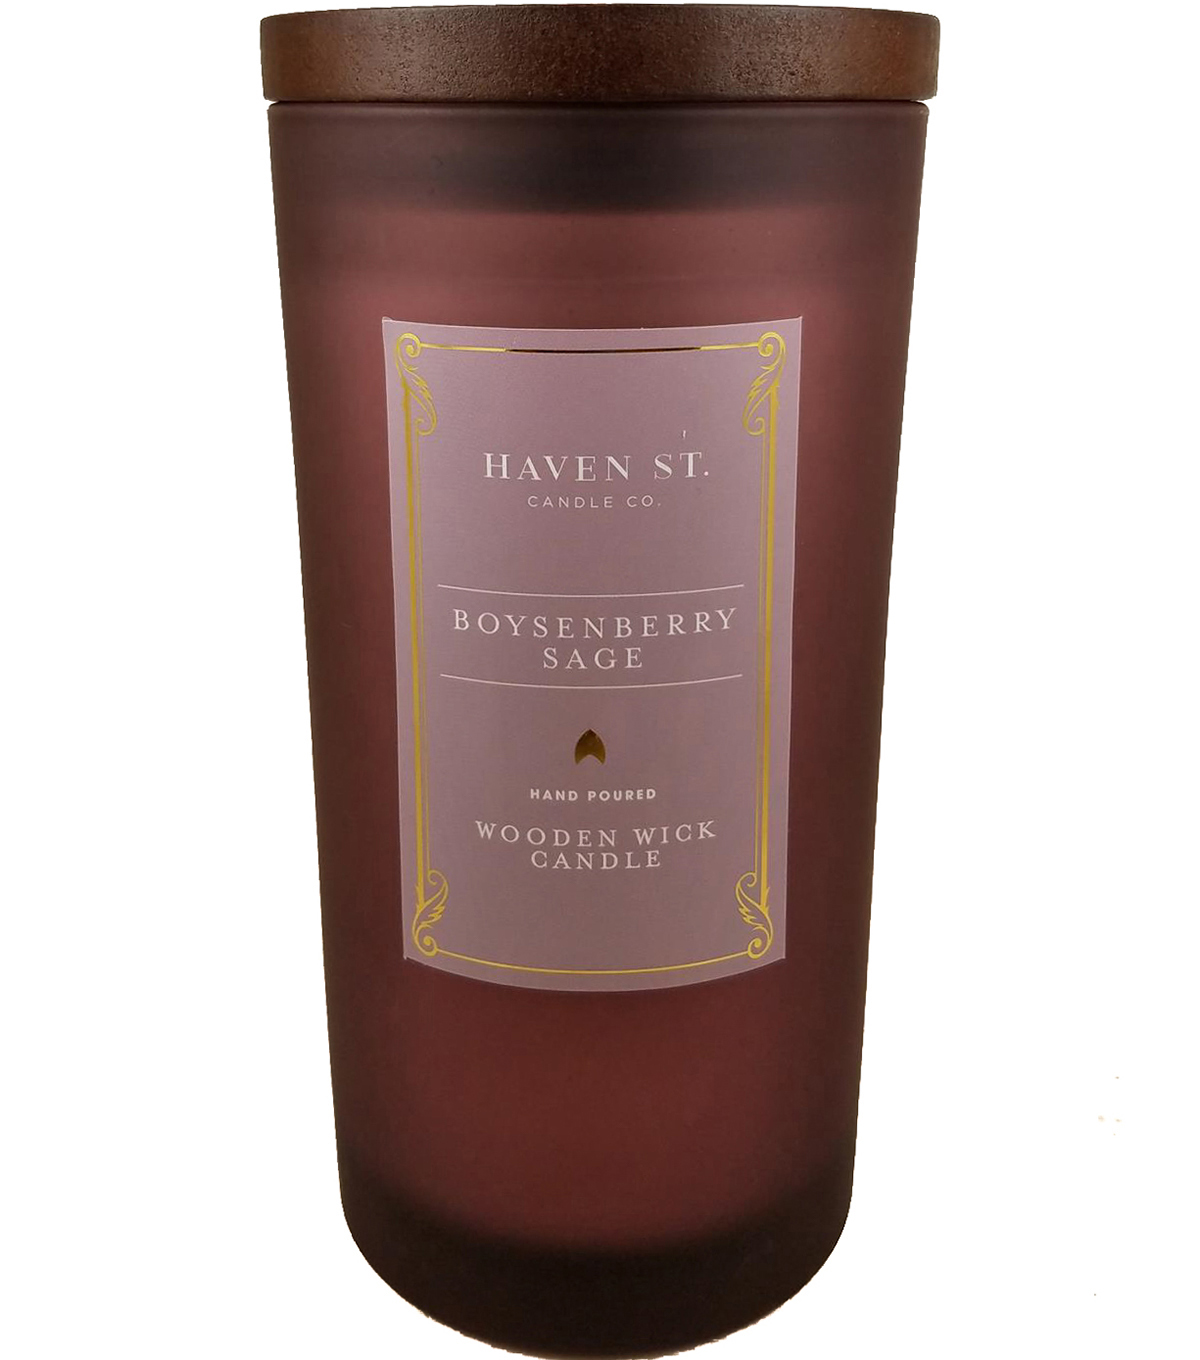 Haven St. Candle Co. 11 oz. Boysenberry Sage Scented Wooden Wick Candle